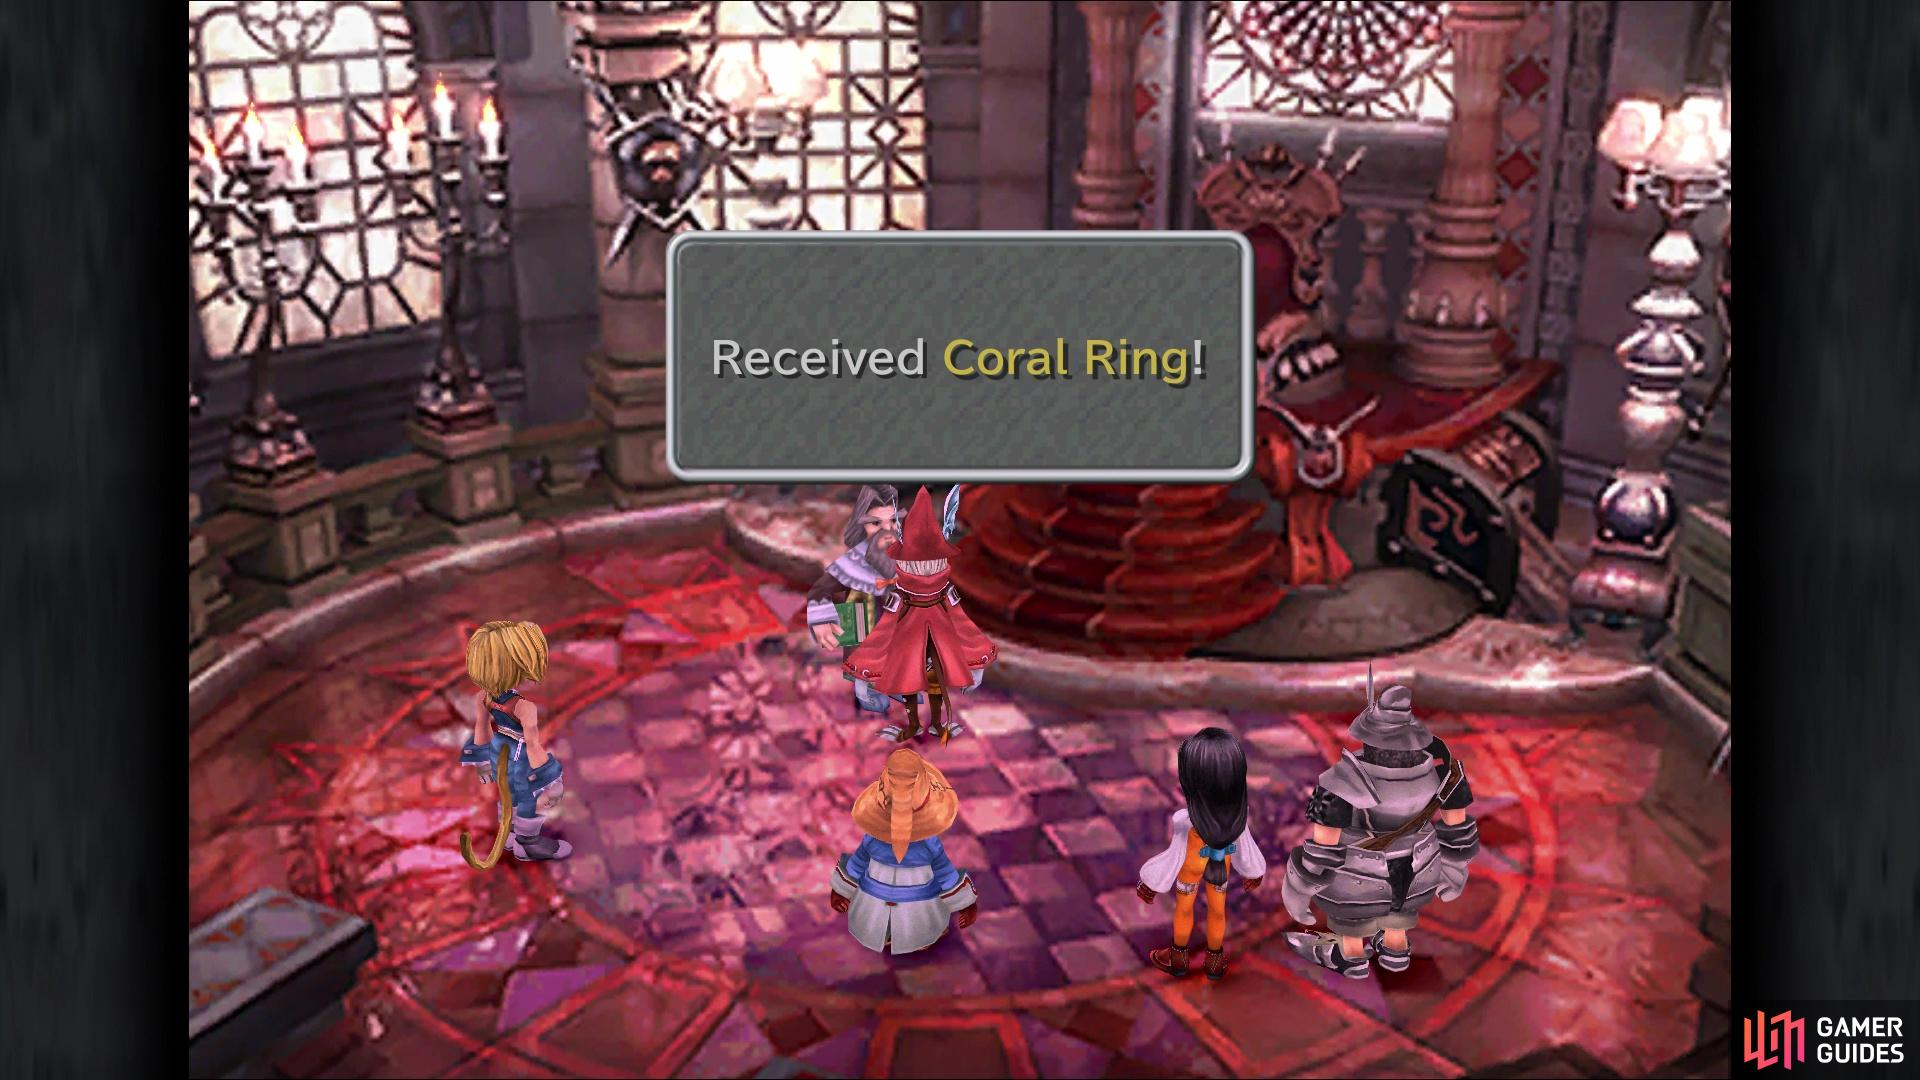 Freya winning will get you the much better Coral Ring